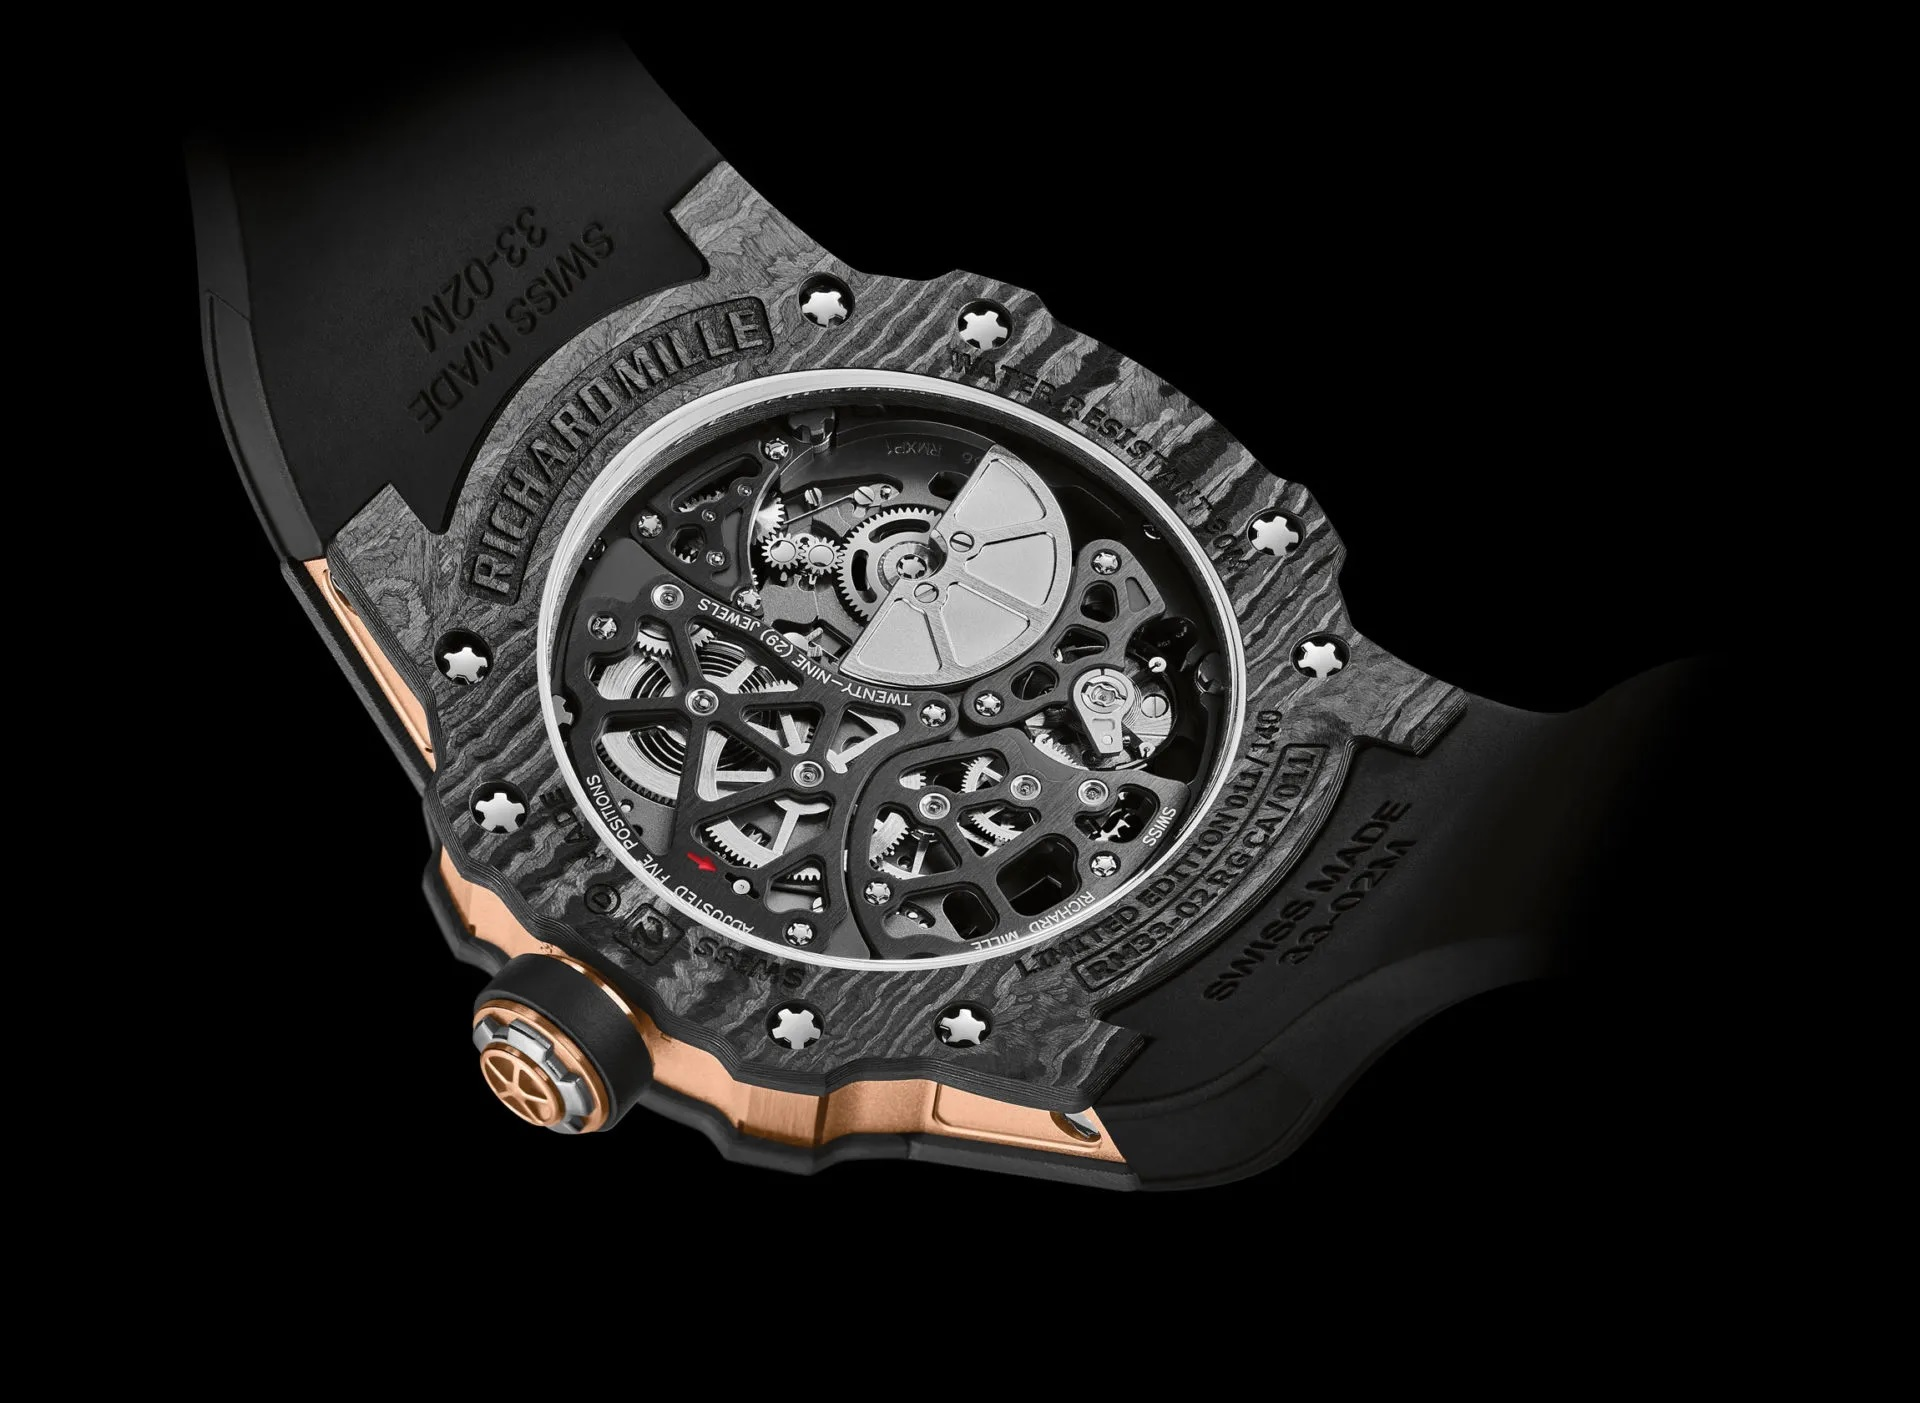 Richard Mille RM 33-02 Automatique